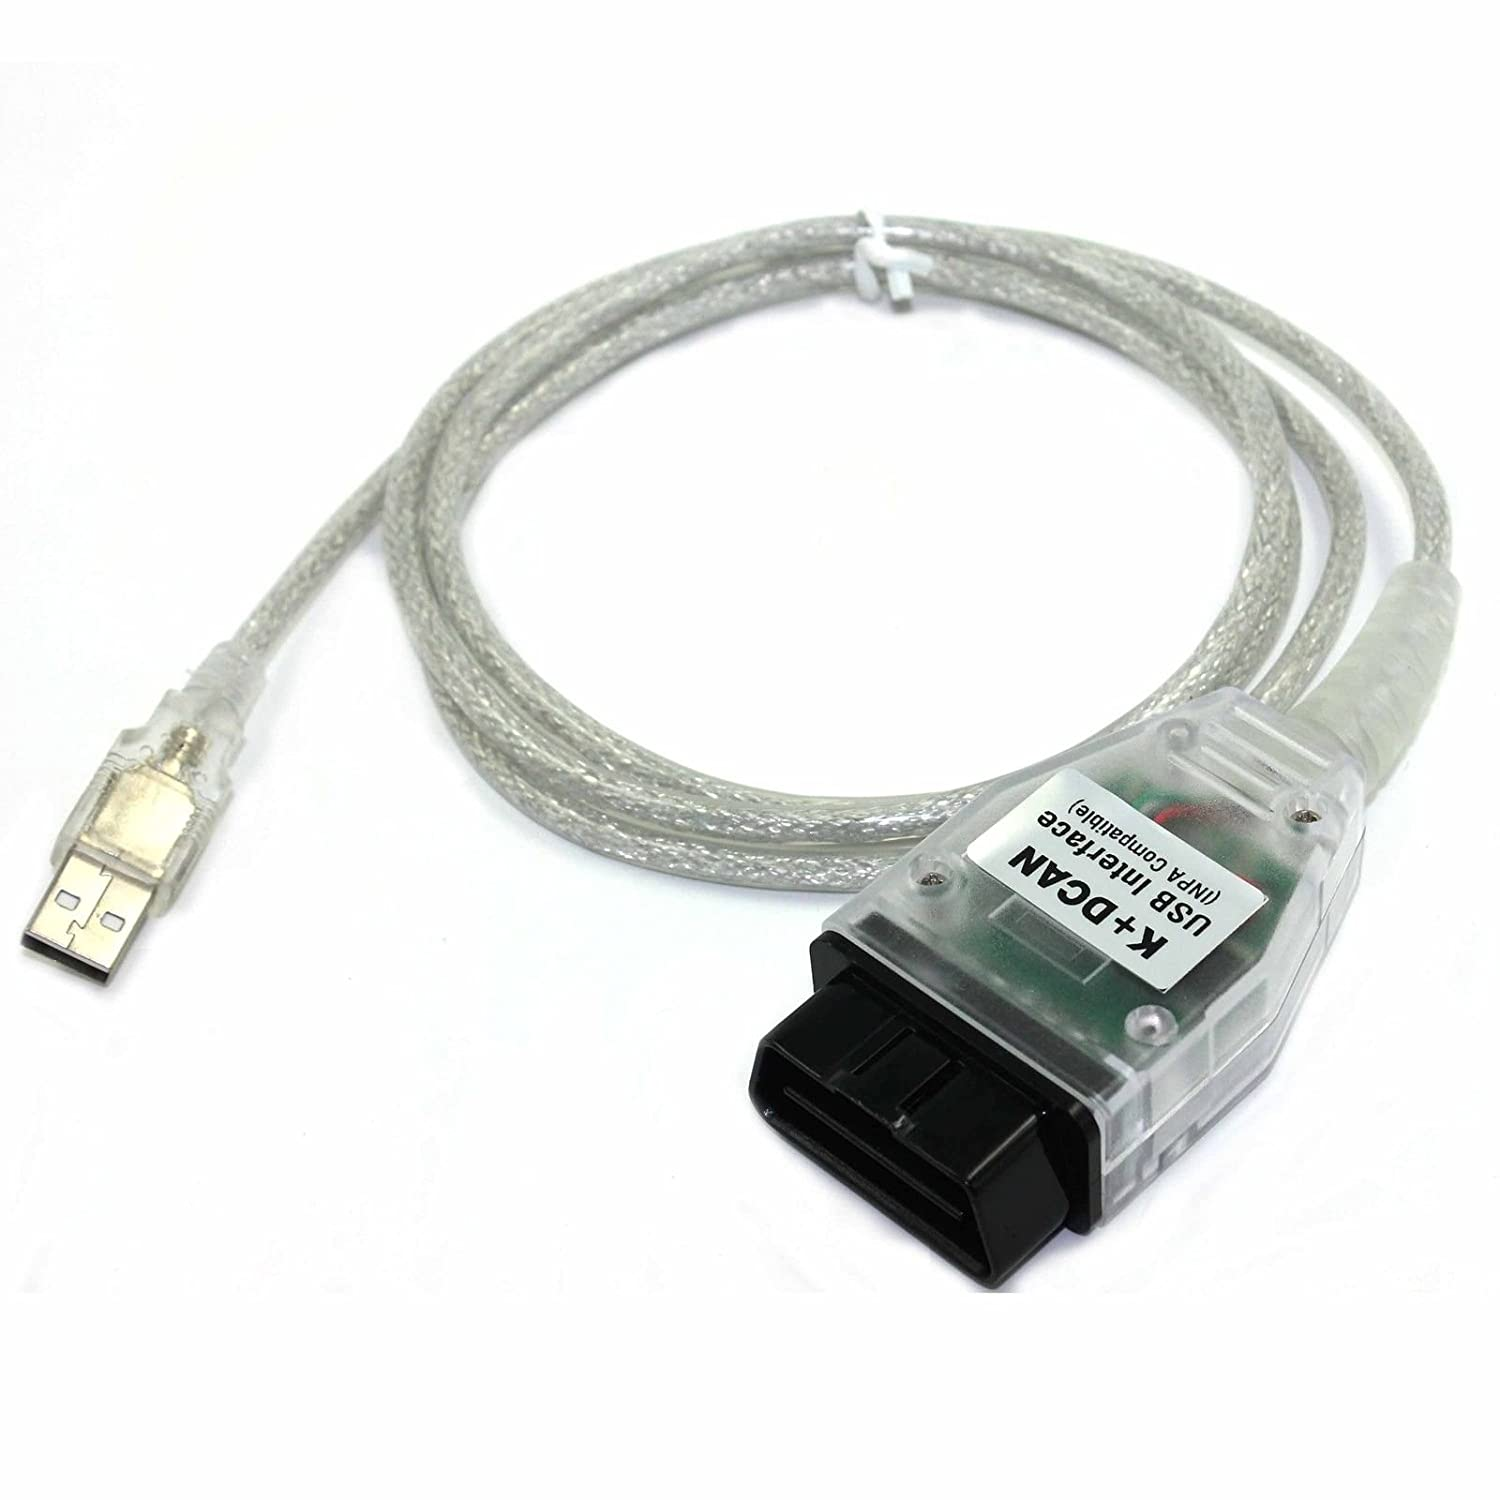 Amazon.com: JahyShow for BMW INPA/Ediabas K+DCAN USB Interface OBDII OBD2  Car Diagnostic Tool Cable: Automotive